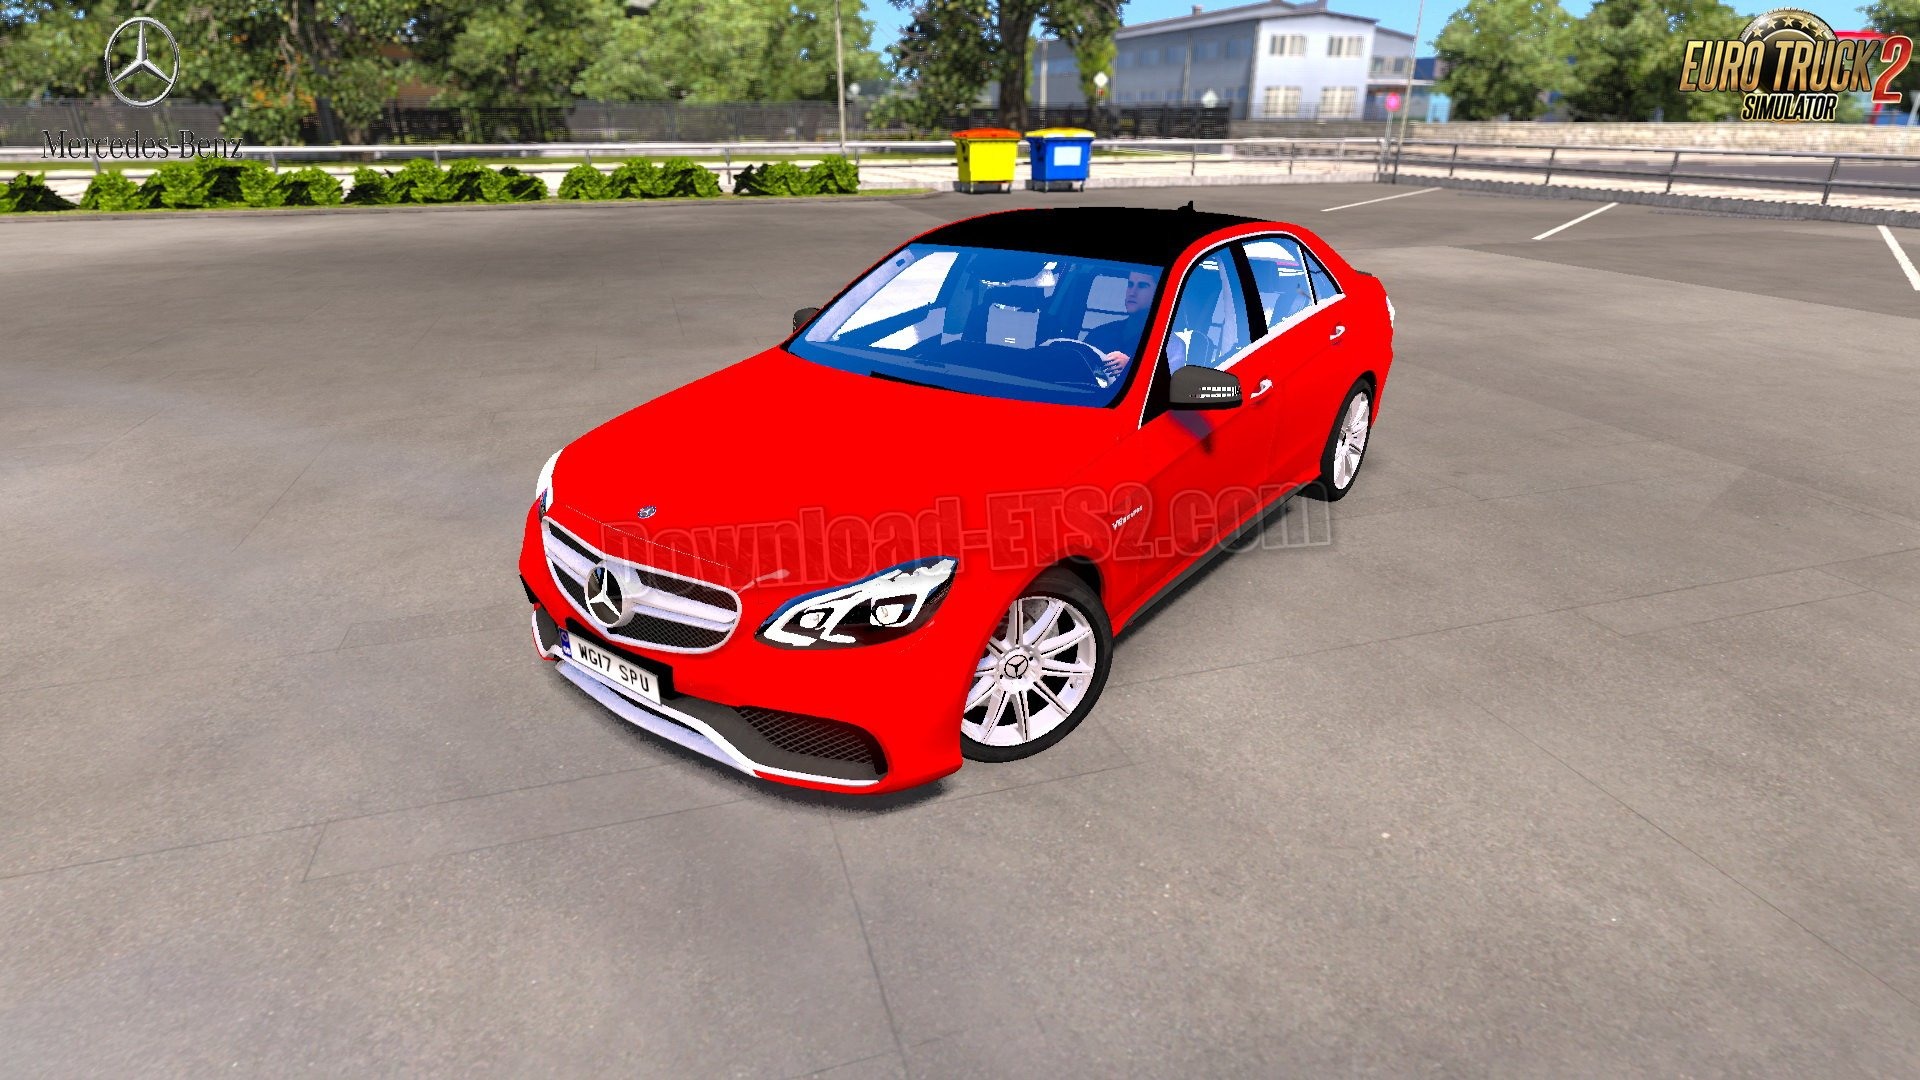 Mercedes Benz E63 AMG 2016 + Interior v1.2 (1.32.x)